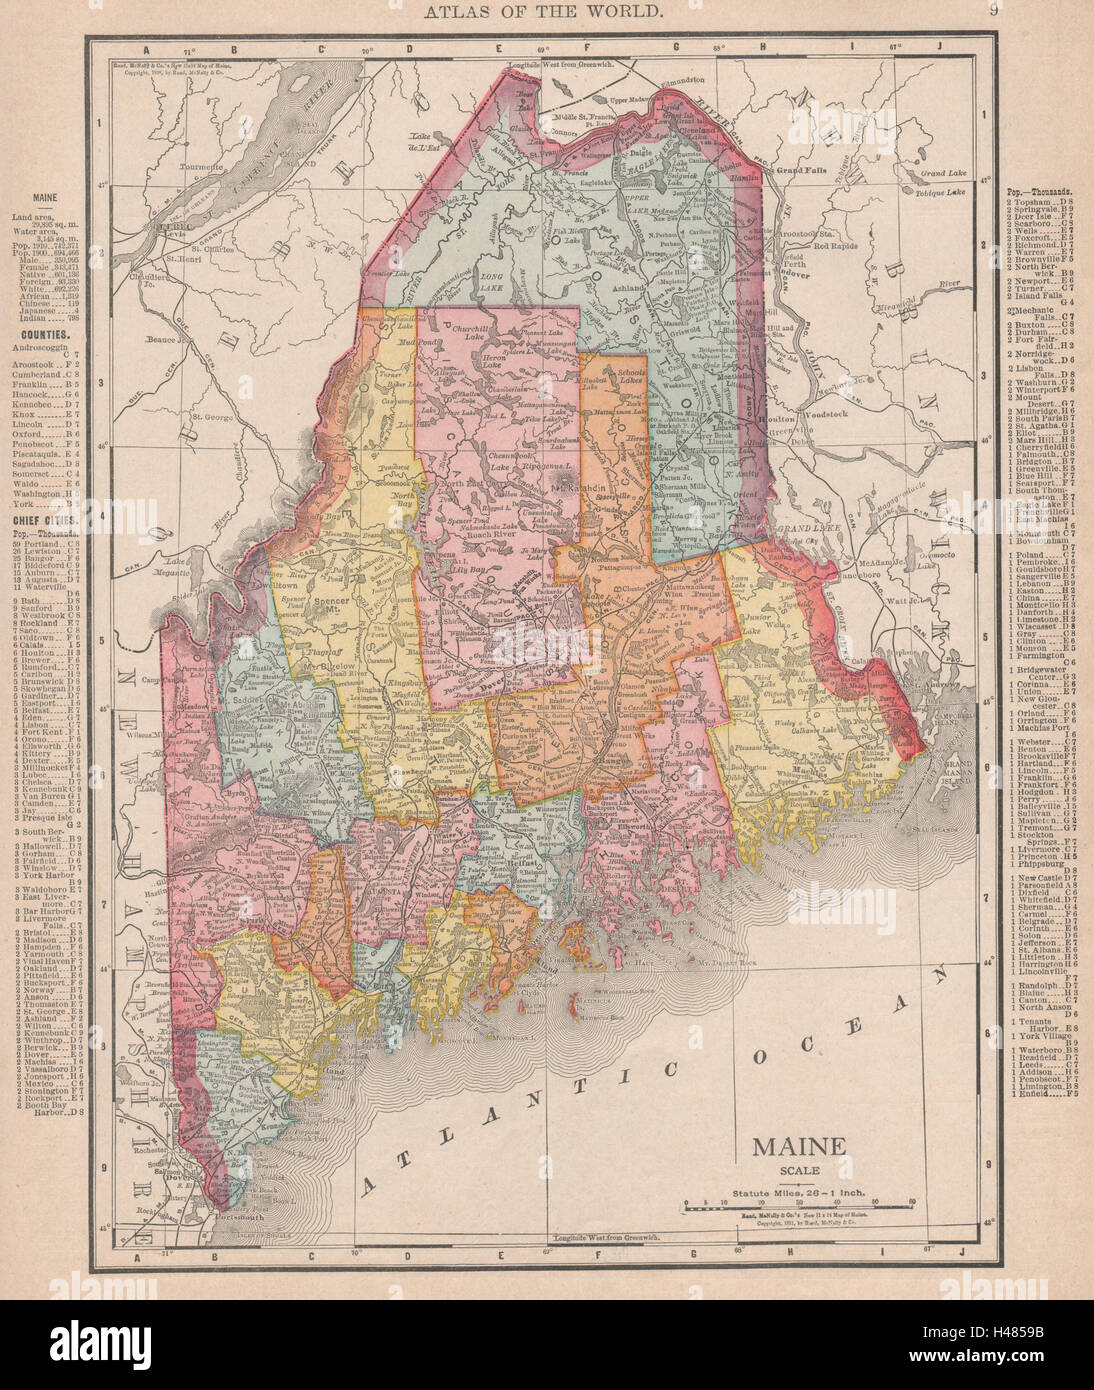 Maine state map showing counties. RAND MCNALLY 1912 old antique plan ...